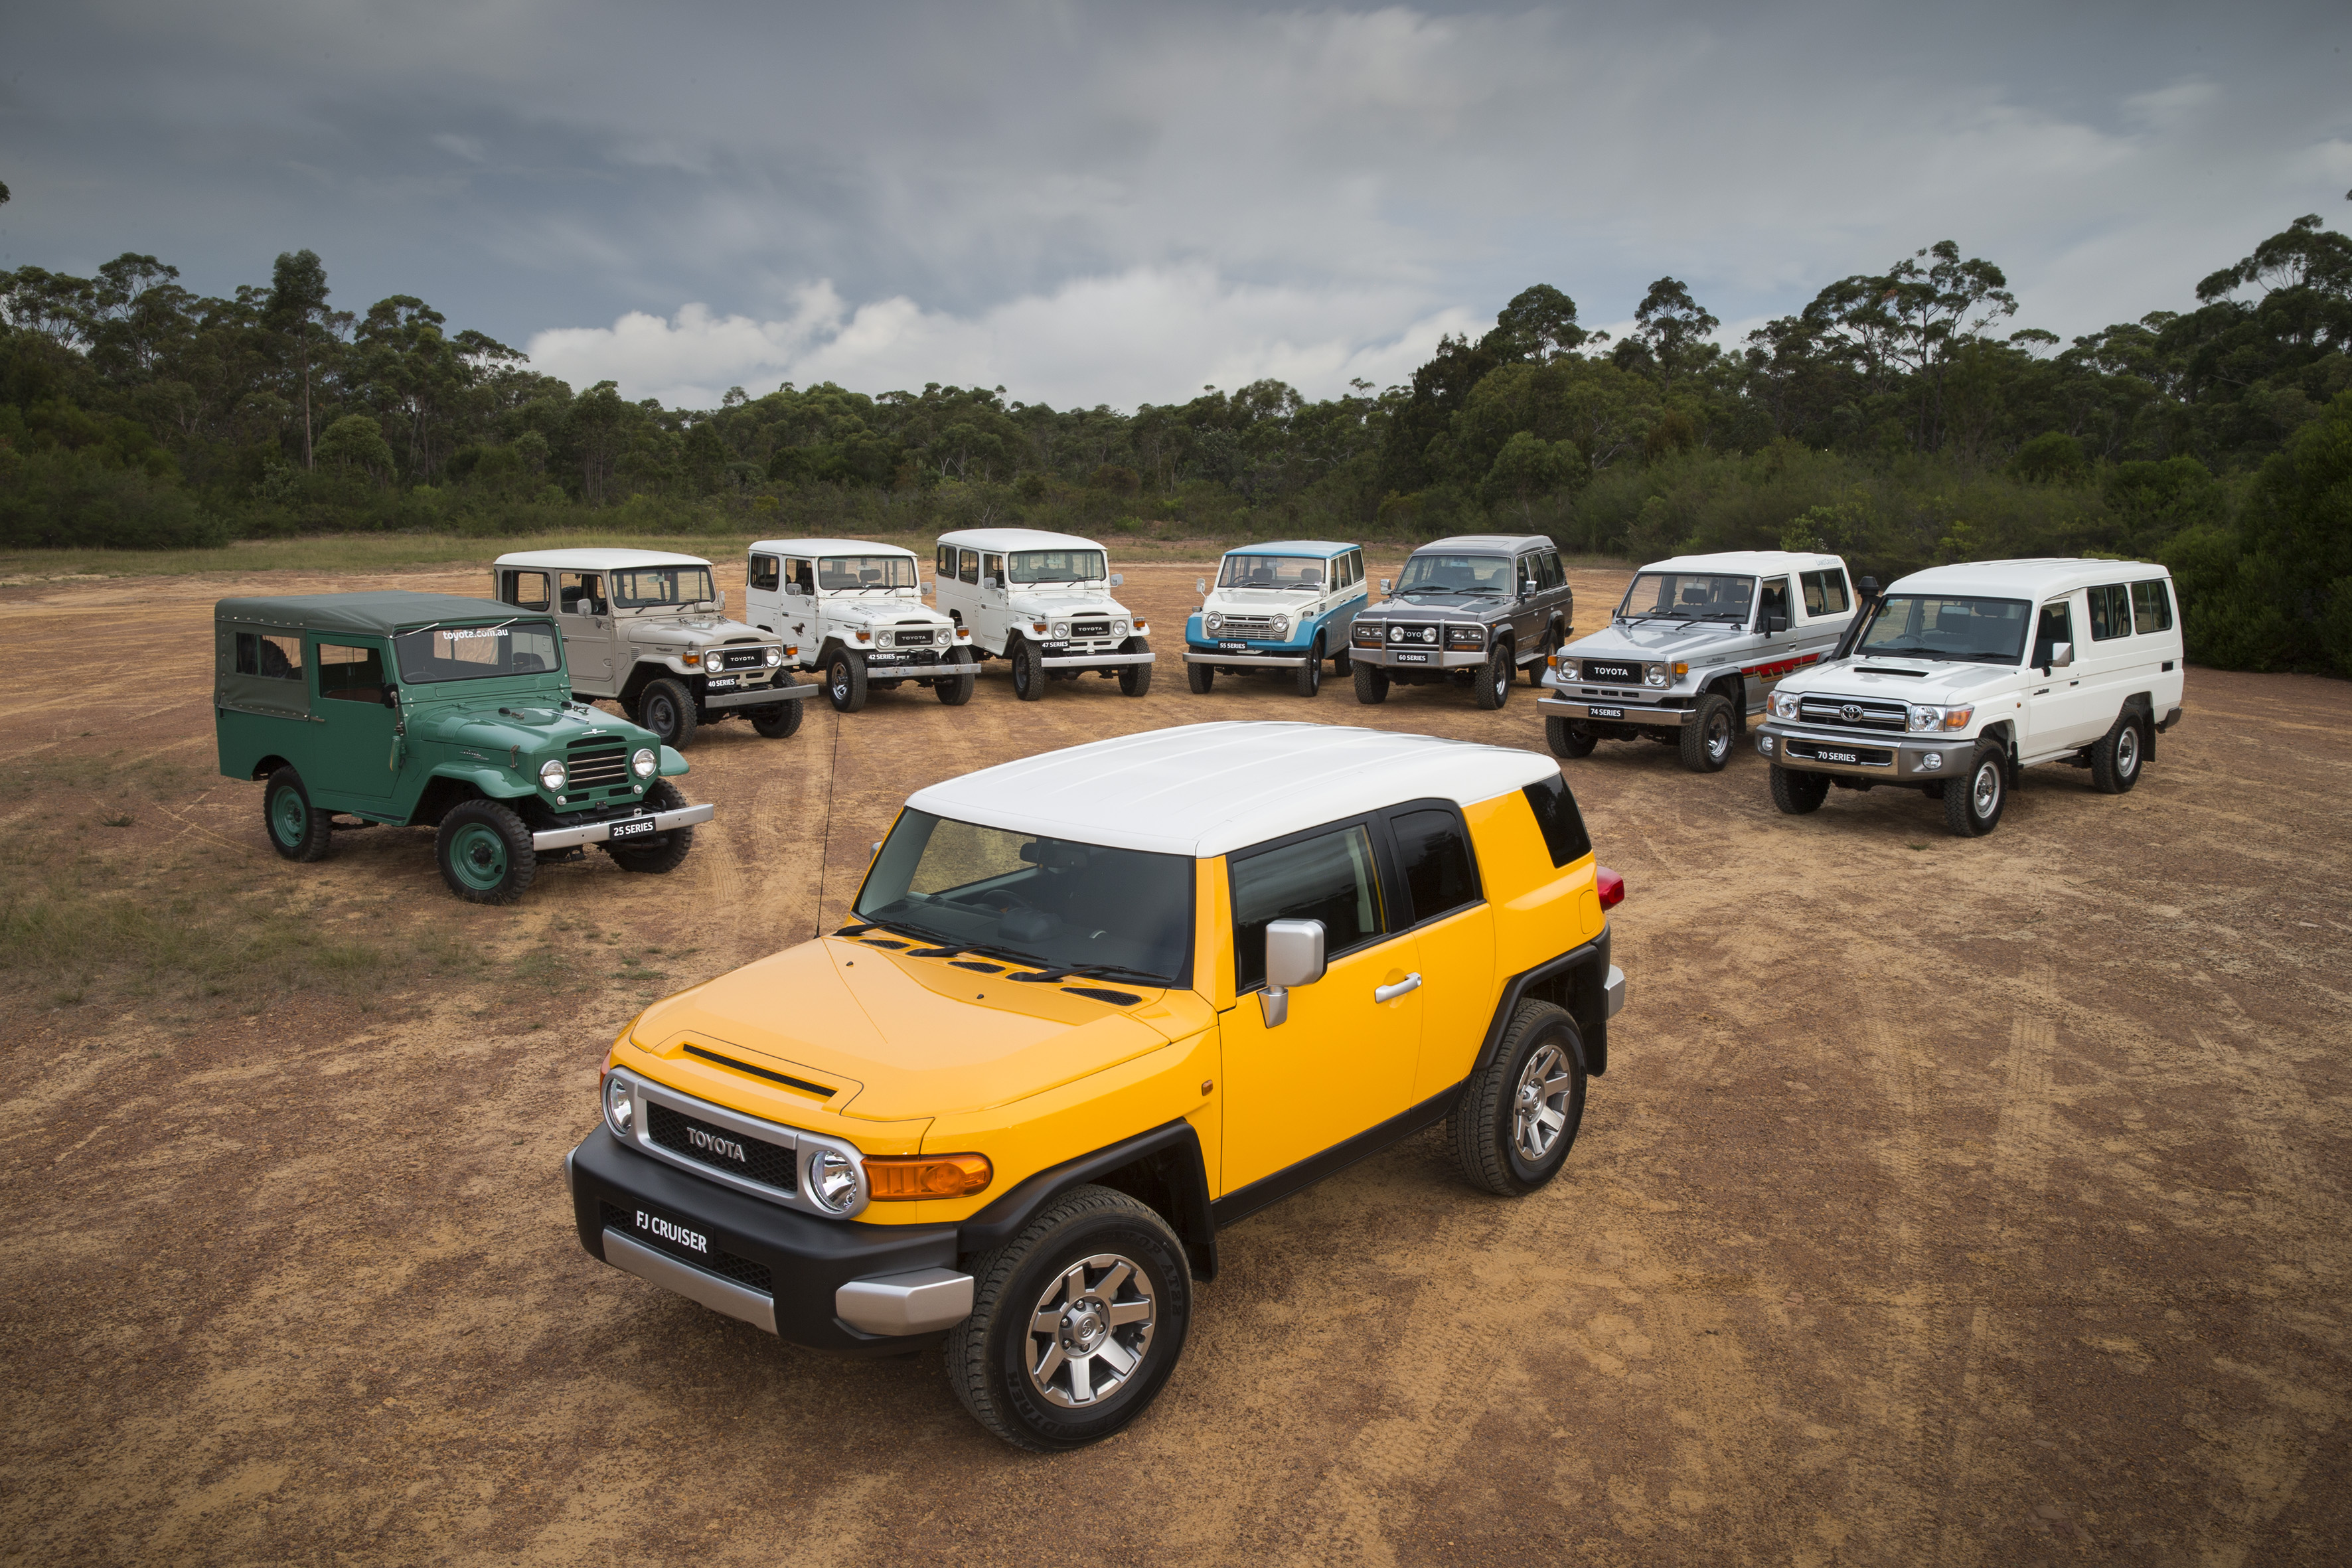 Toyota is celebrating the 70th anniversary of the legendary LandCruiser nameplate.